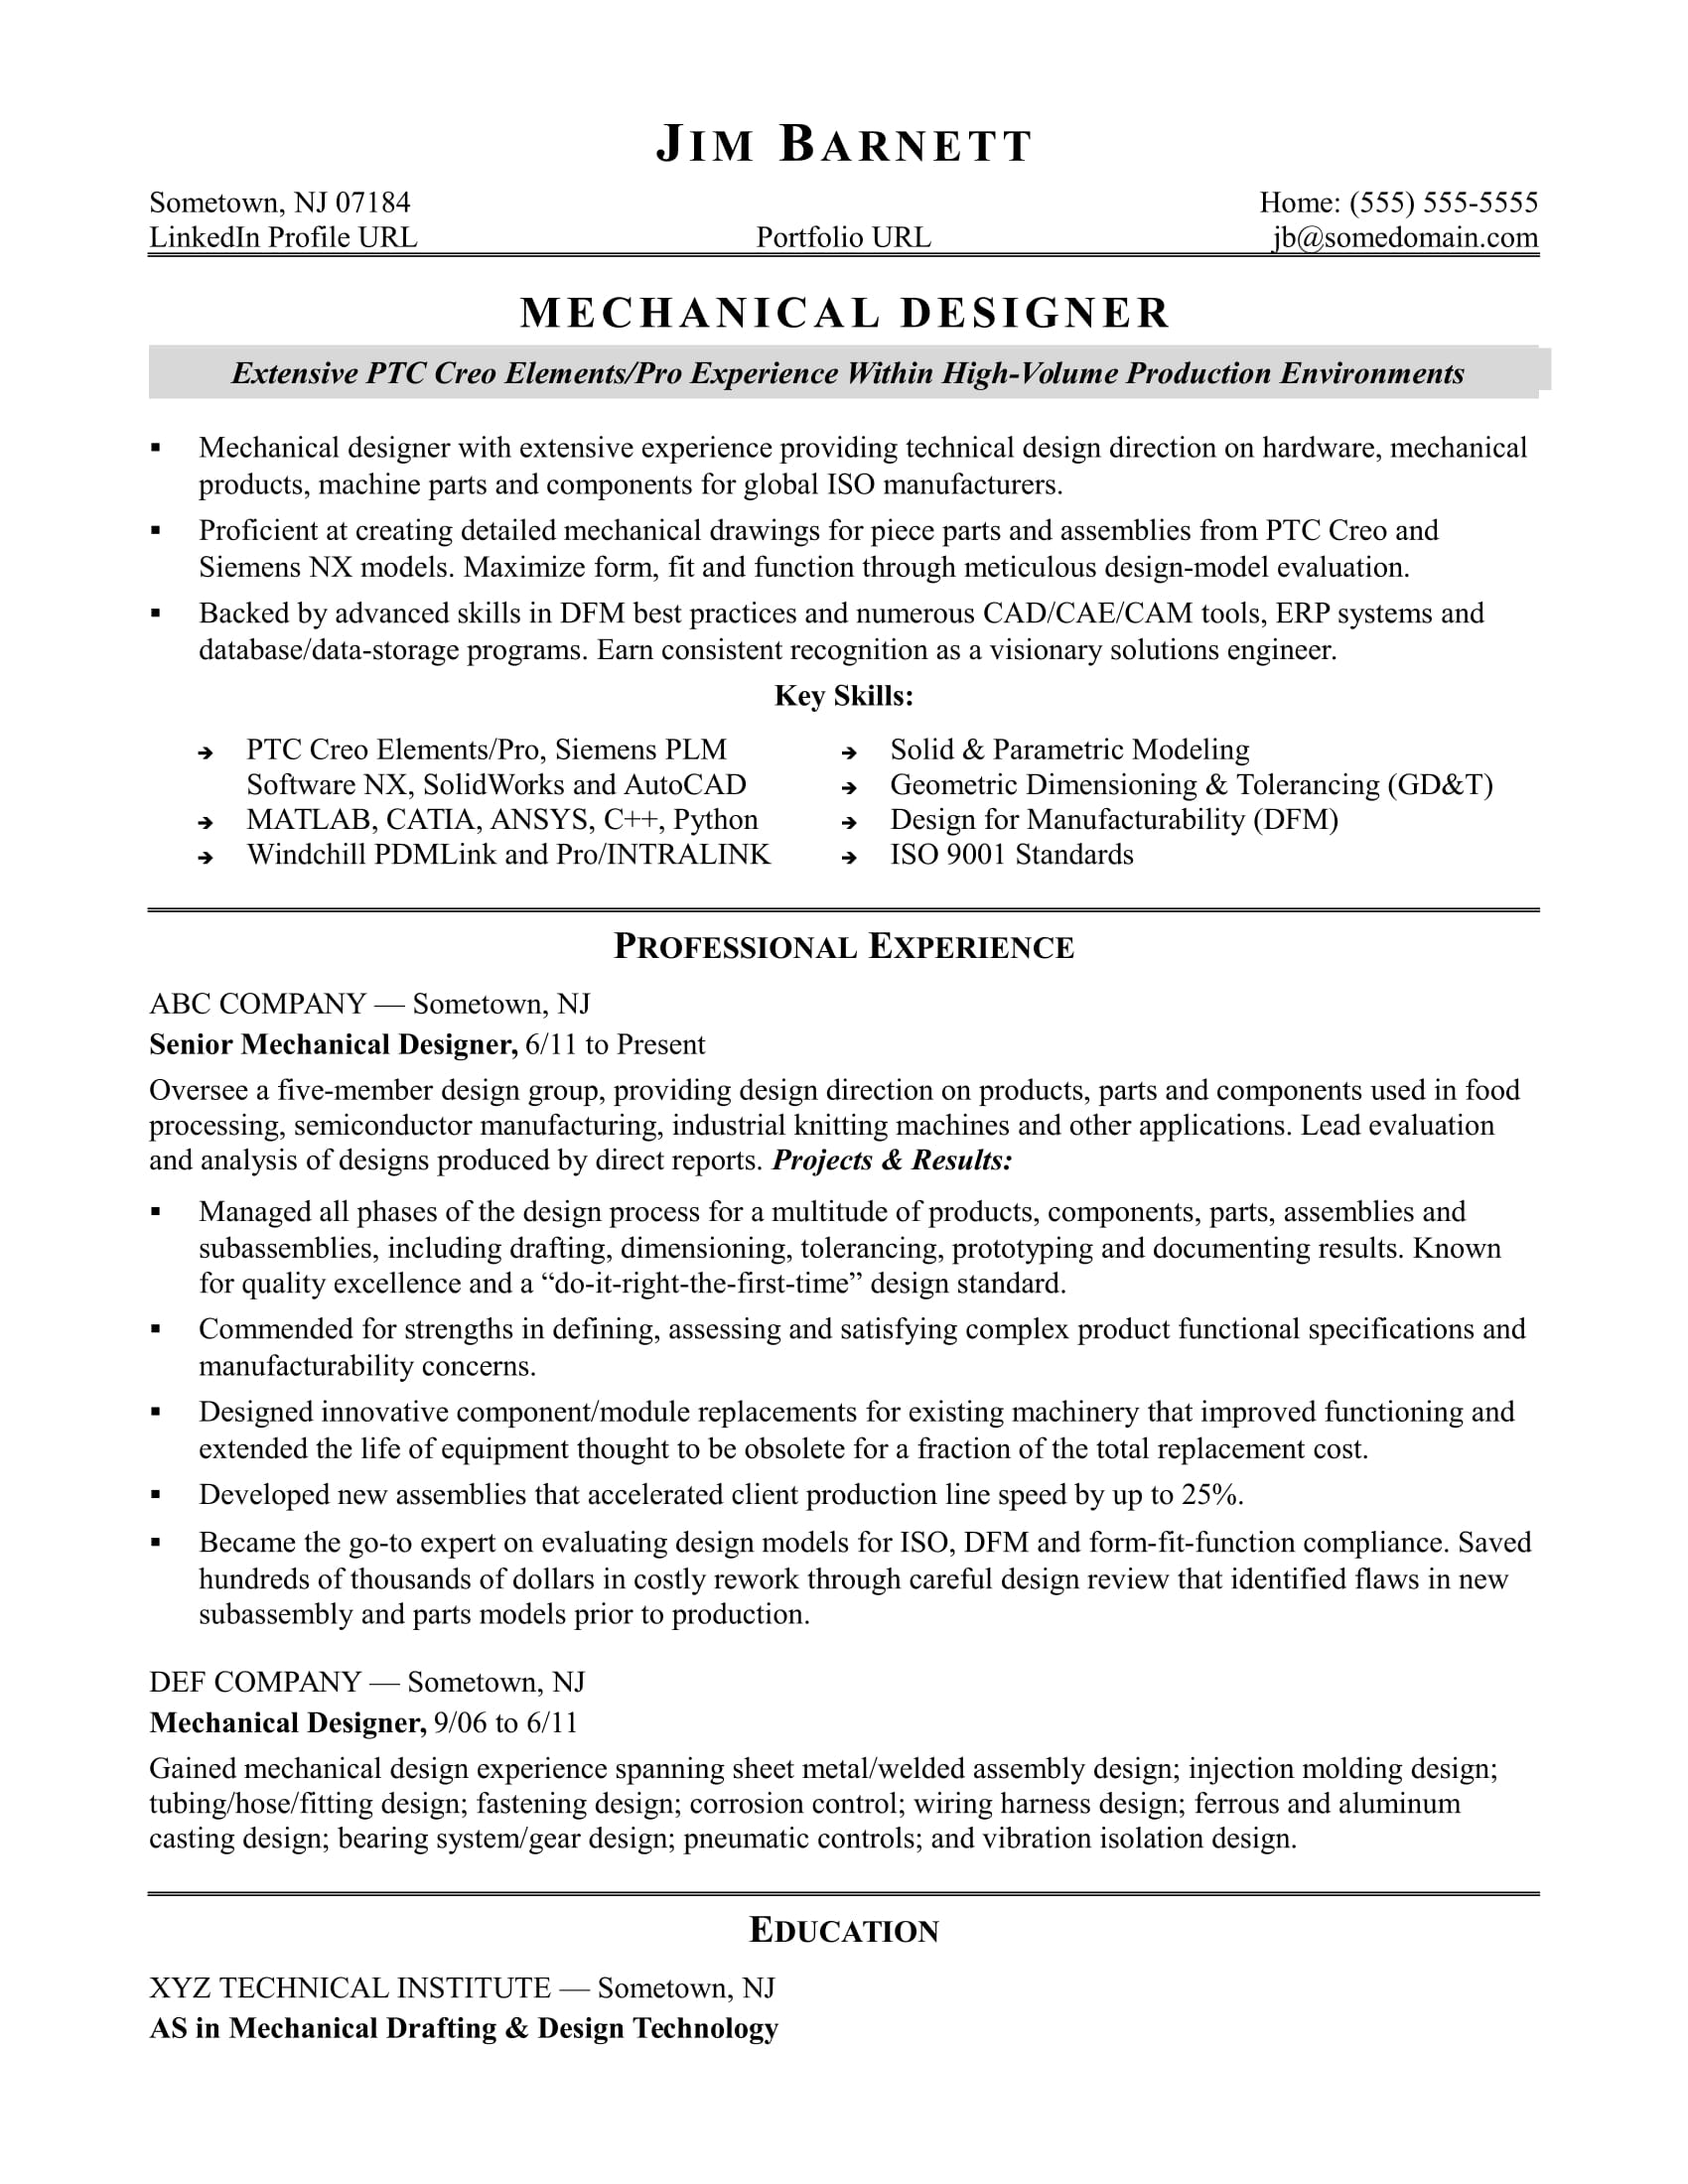 sample resume for an experienced mechanical designer monster experience format college Resume Experience Resume Format